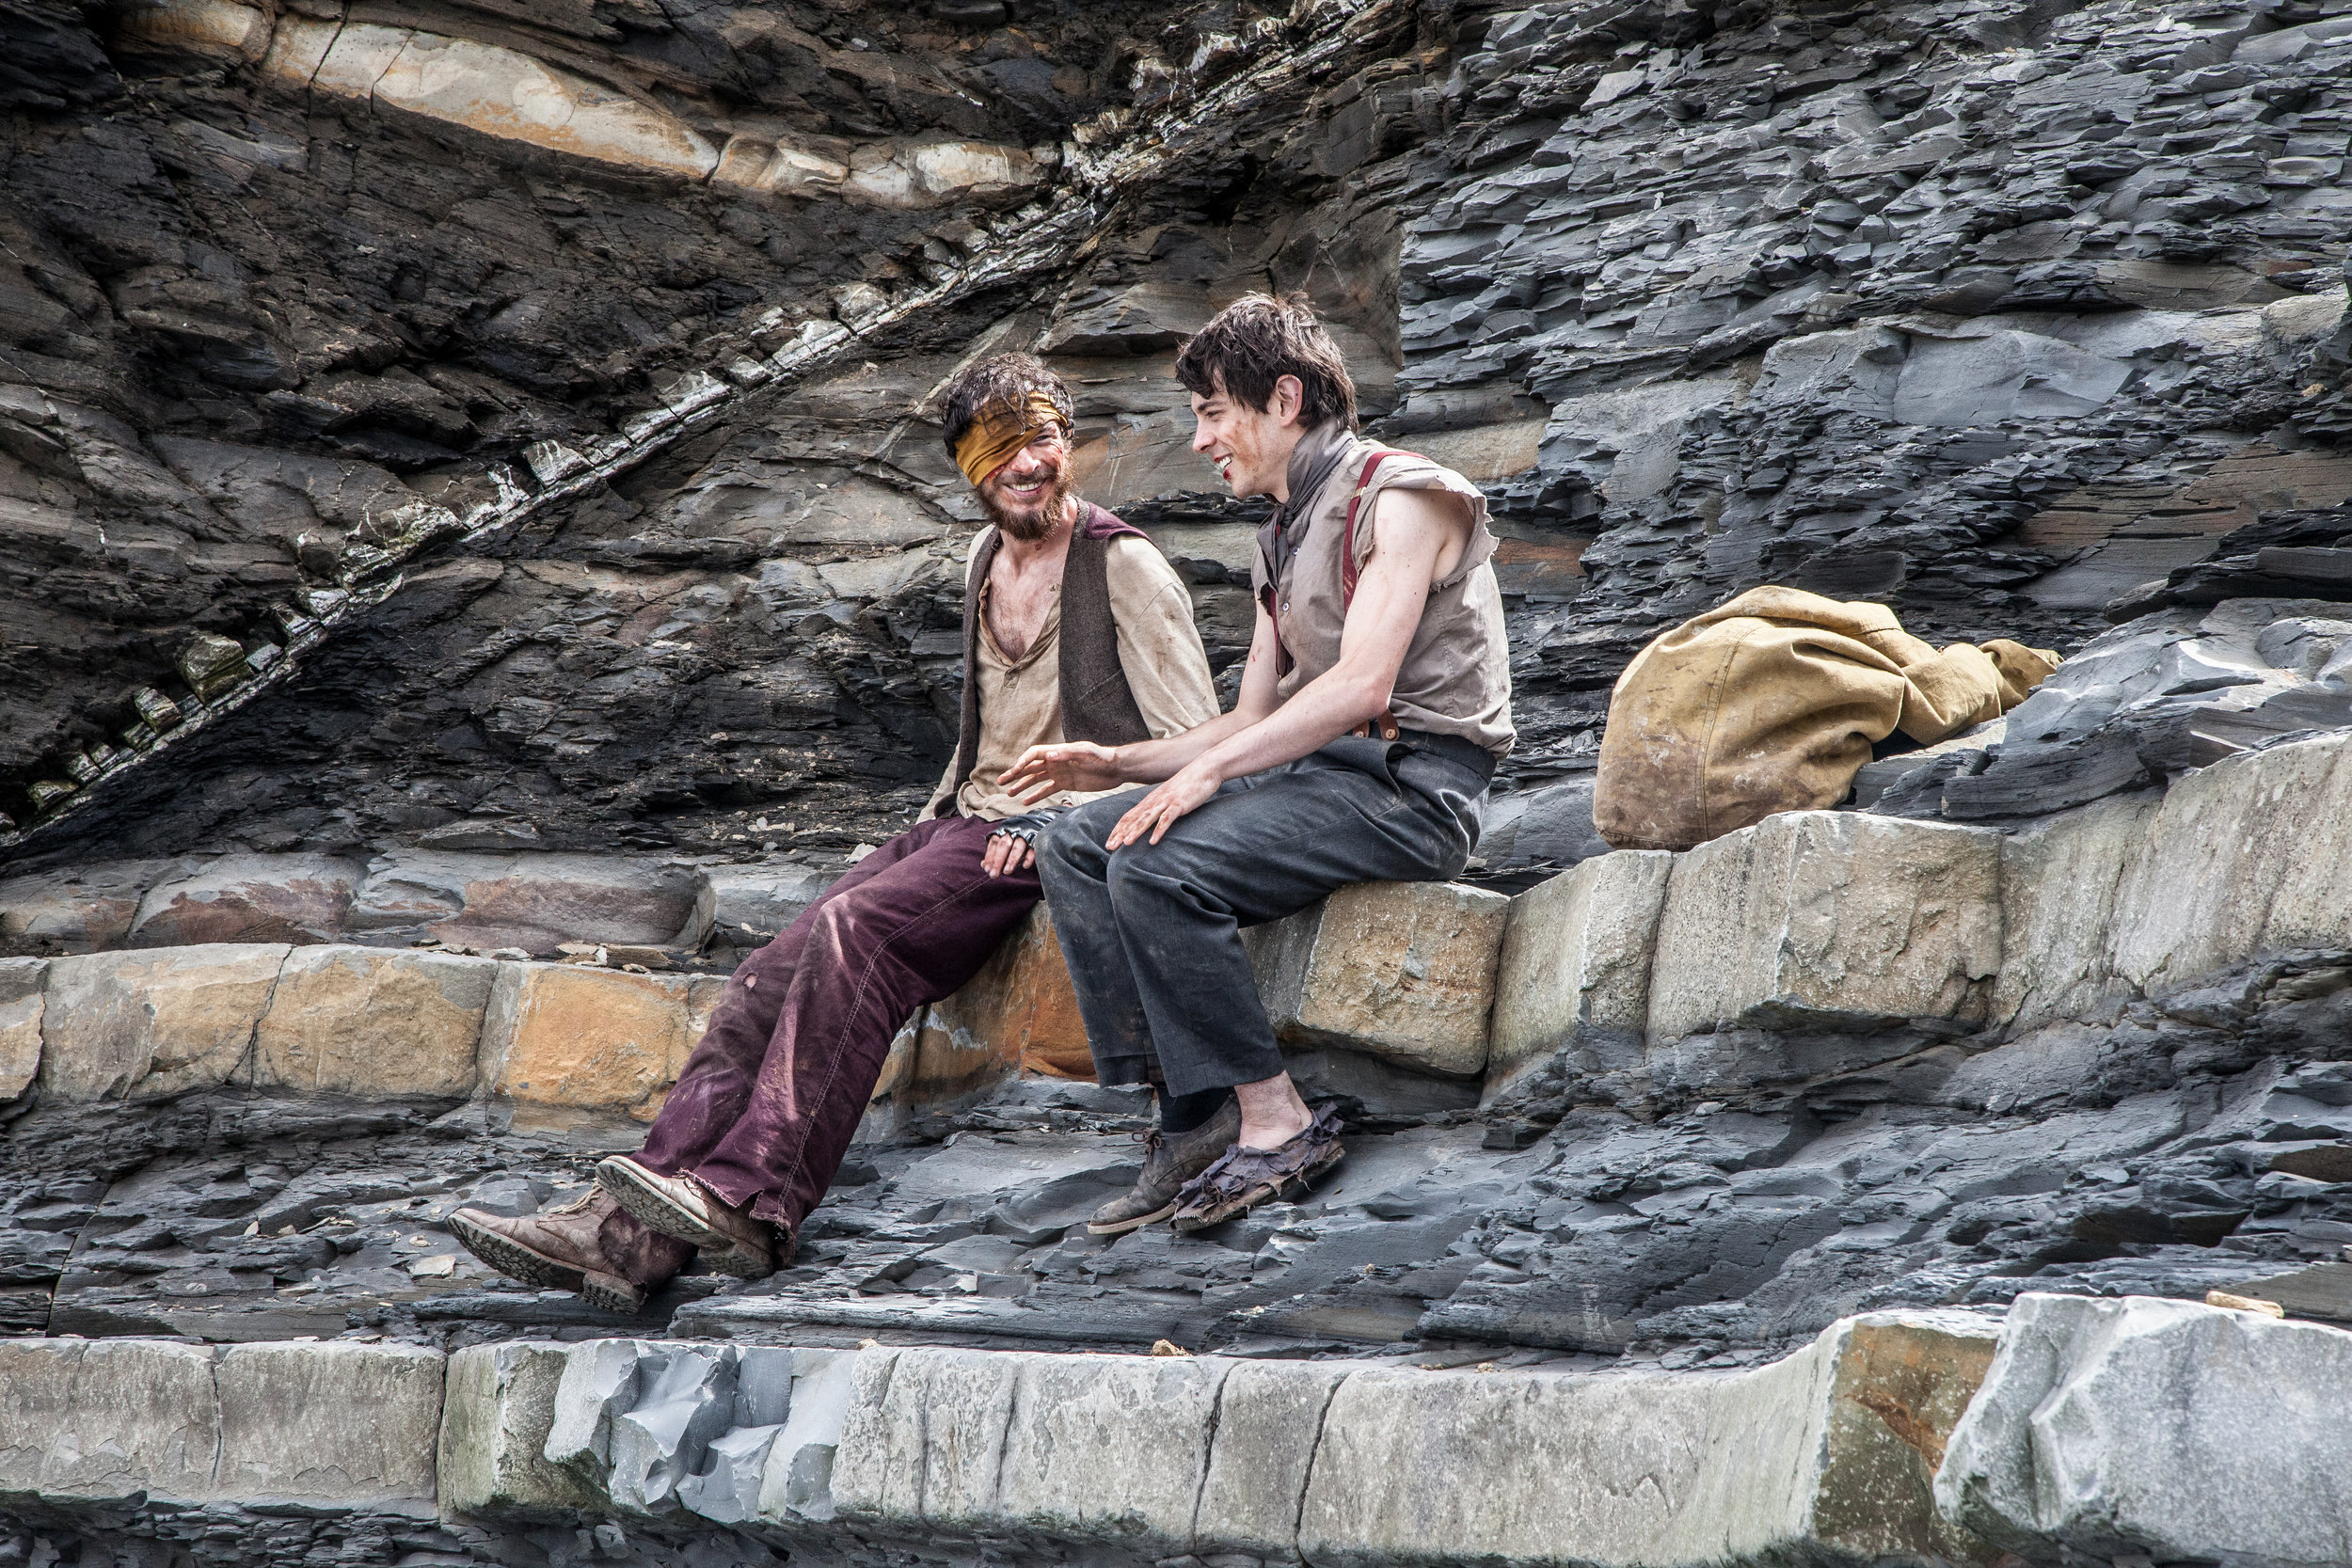 DSR - Joe Newton ('Clay') and Jerome Thompson ('Nugget') have some downtime between setups on a cliff face-12.jpg